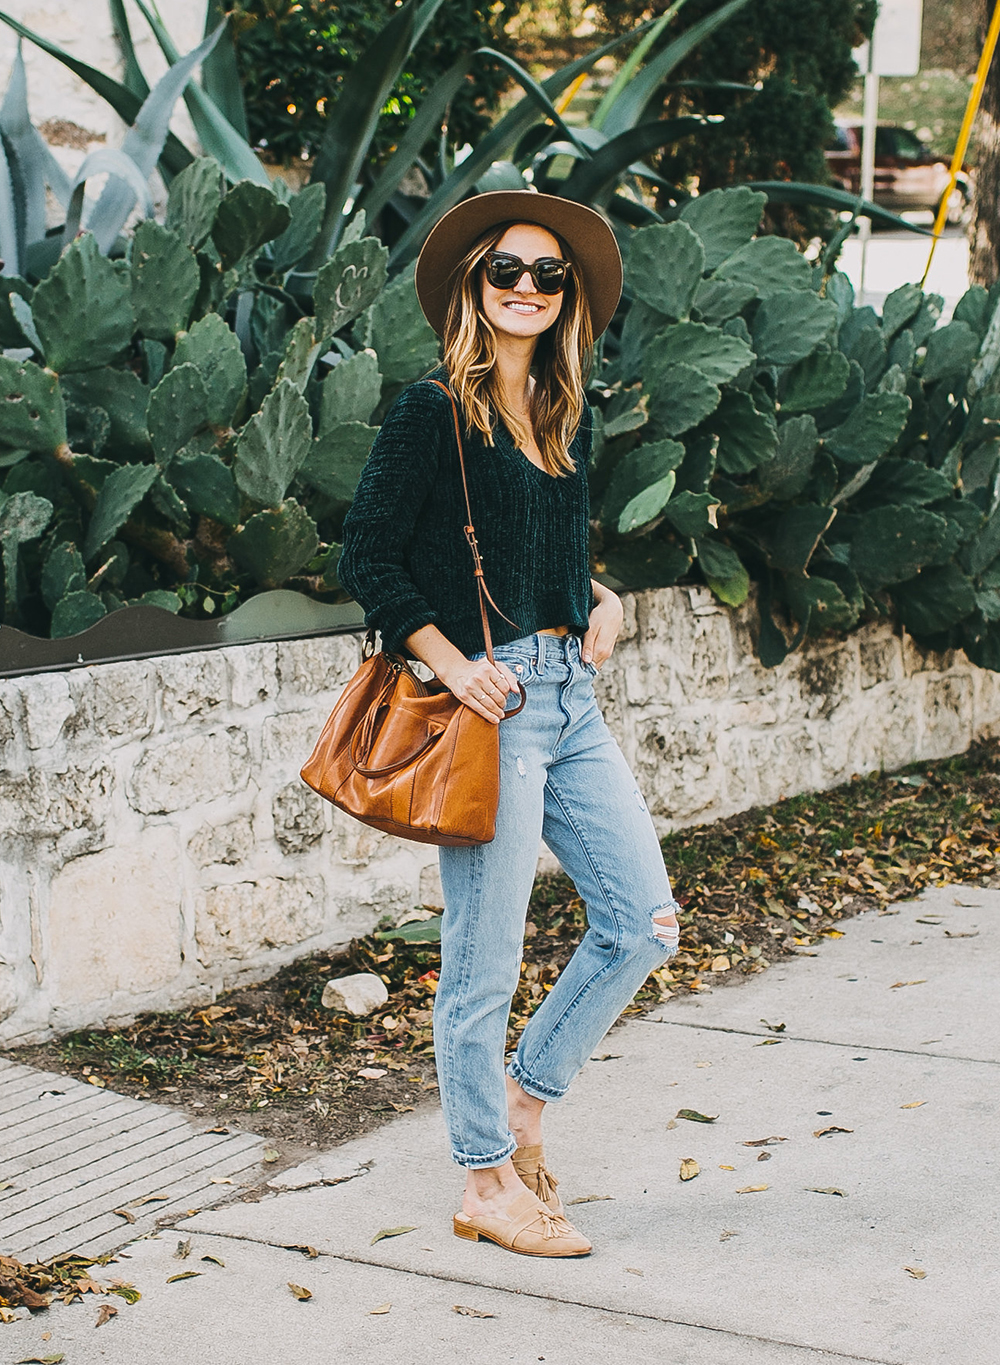 livvyland-blog-olivia-watson-austin-texas-fashion-style-blogger-teal-cropped-sweater-tassel-slides-6